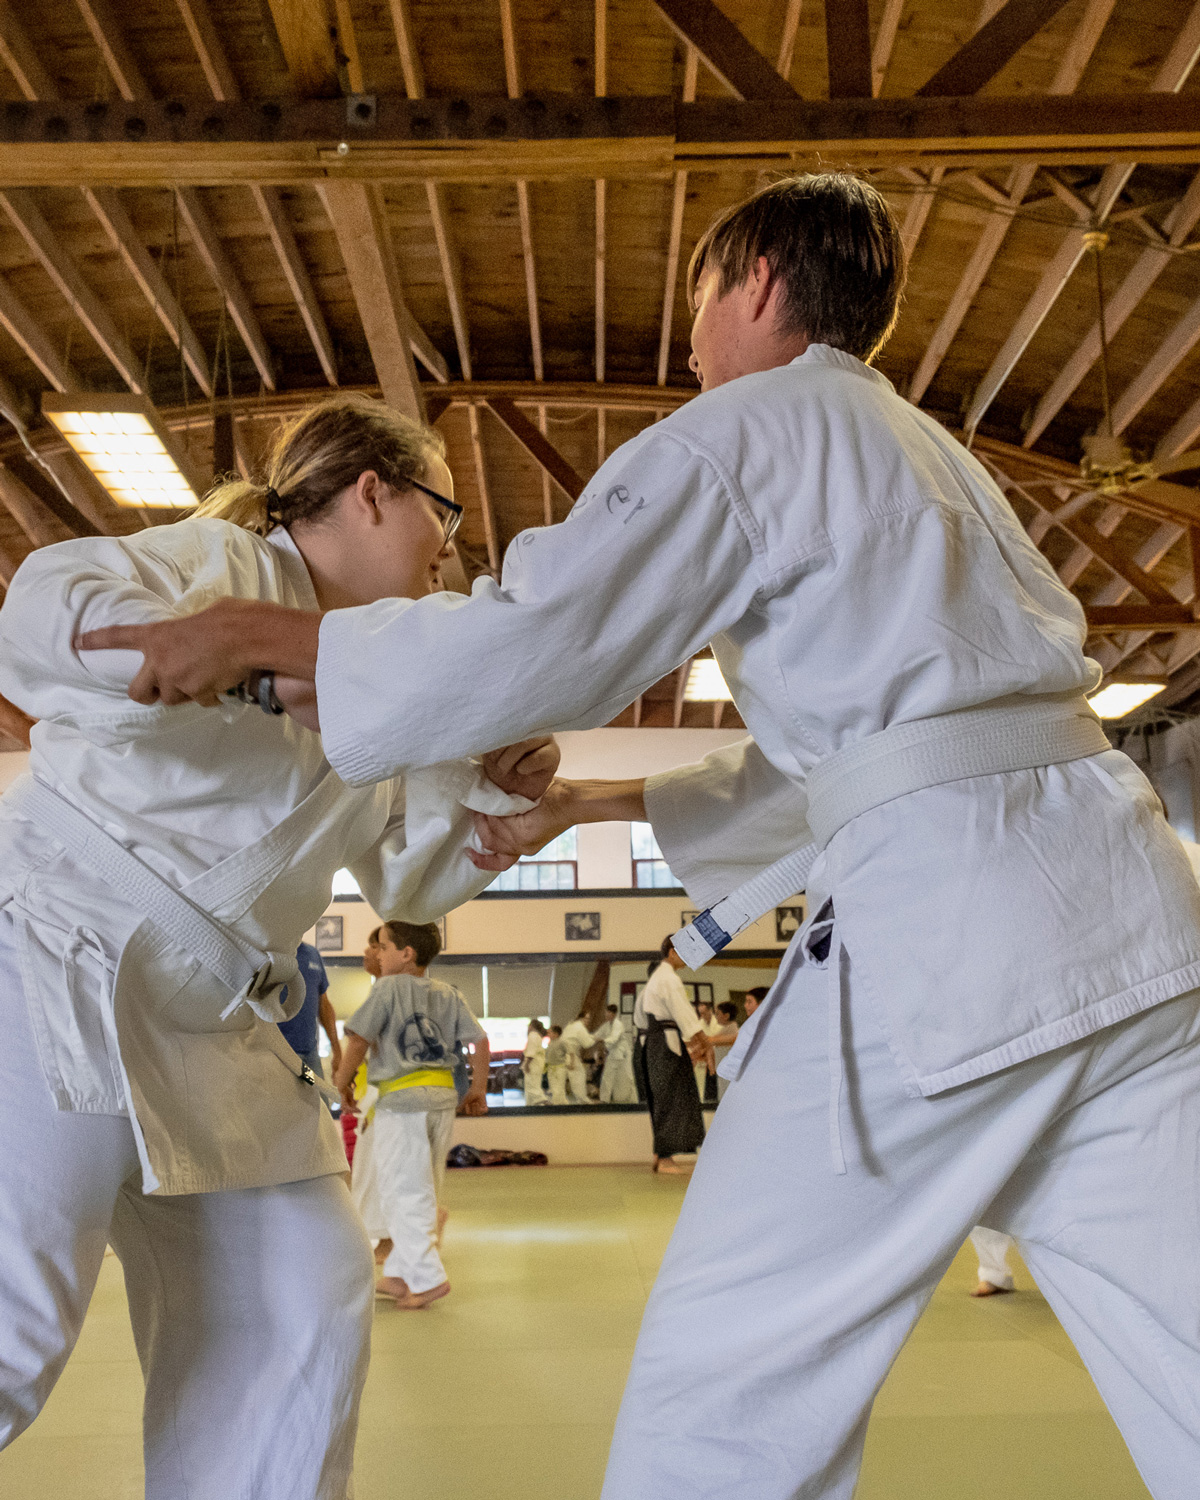 TEEN CLASS - Ages 12-17 are crucial in a child's development. As they make the transition to adulthood, they face a variety of challenges. From societal influences to overwhelming physical and emotional growth, it's a great time for them to tap into their calm, powerful inner strength.Aikido provides a venue unlike any other to learn how to take risks, expand their comfort zone, and learn about their self as well as others.Stepping on the mat and practicing aikido gives teens a break from the fast-paced, high-tech, instant gratification world. Here, they develop skills to settle, ground and be a positive force in the world. Call us today at (775) 337-8030 to schedule a visit.